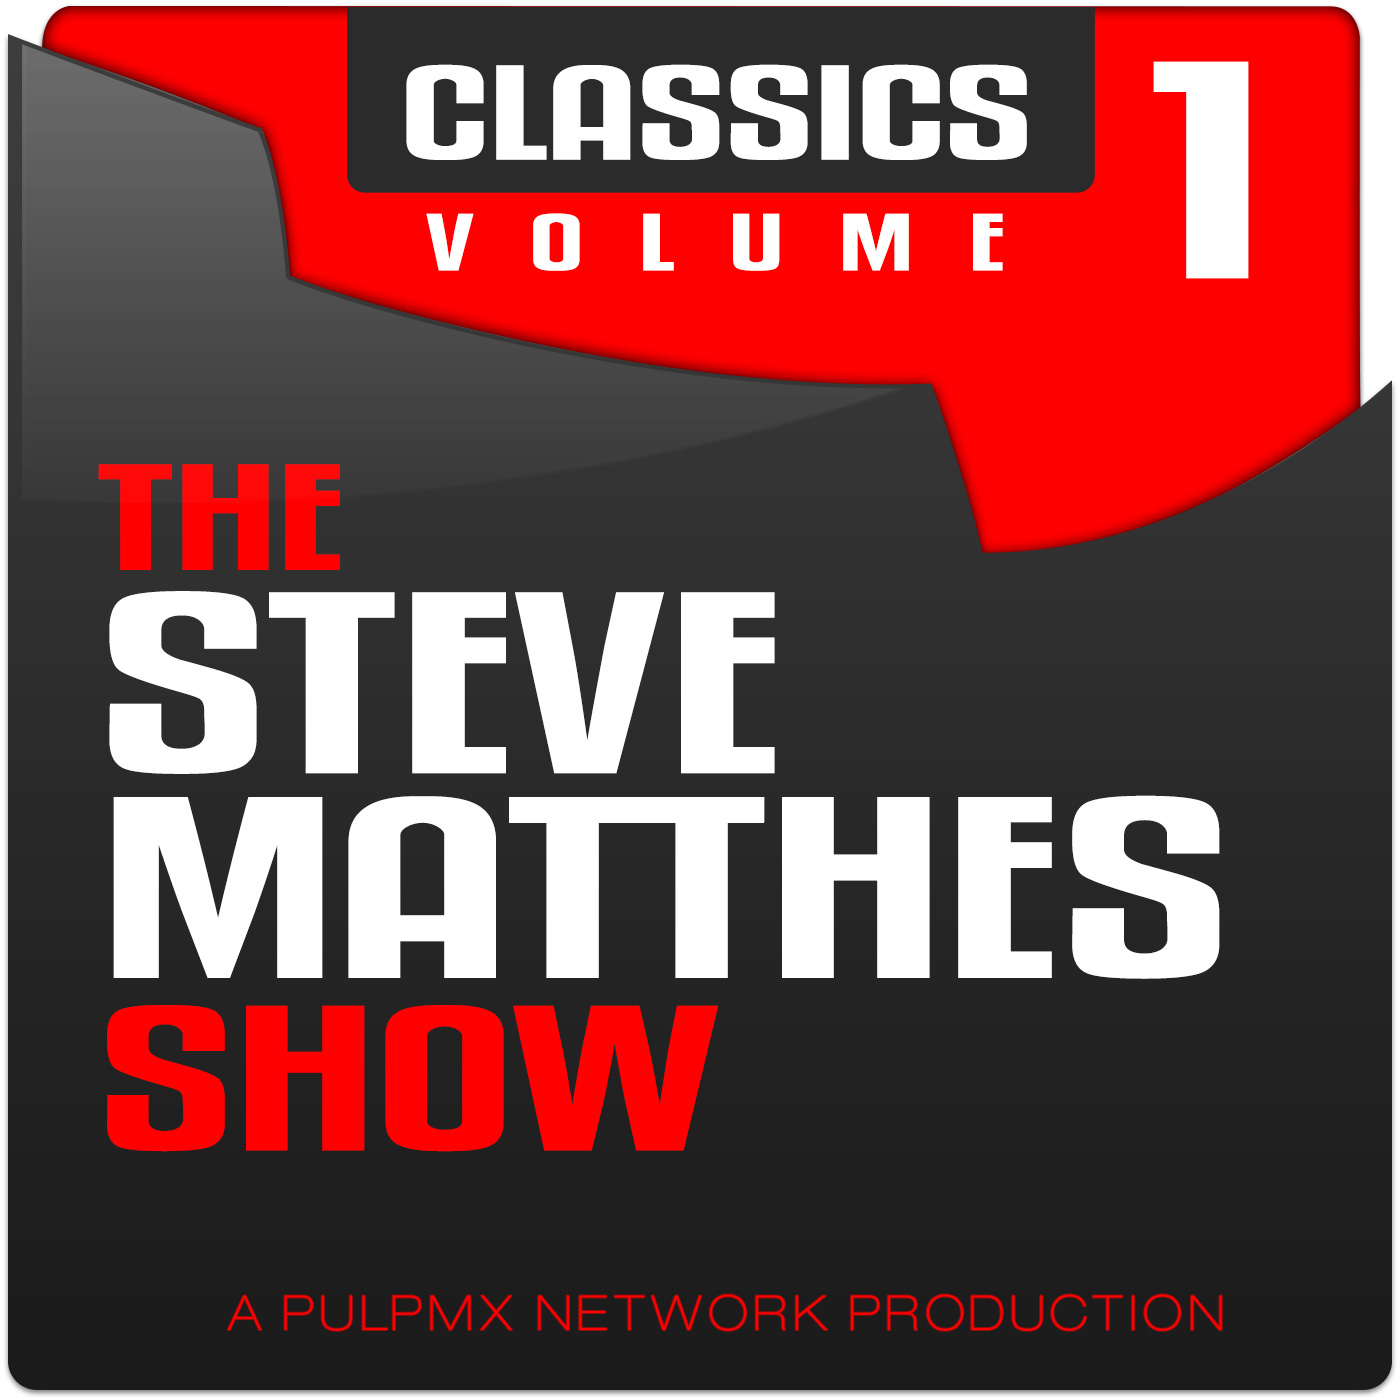 The Steve Matthes Show Classics Vol.1